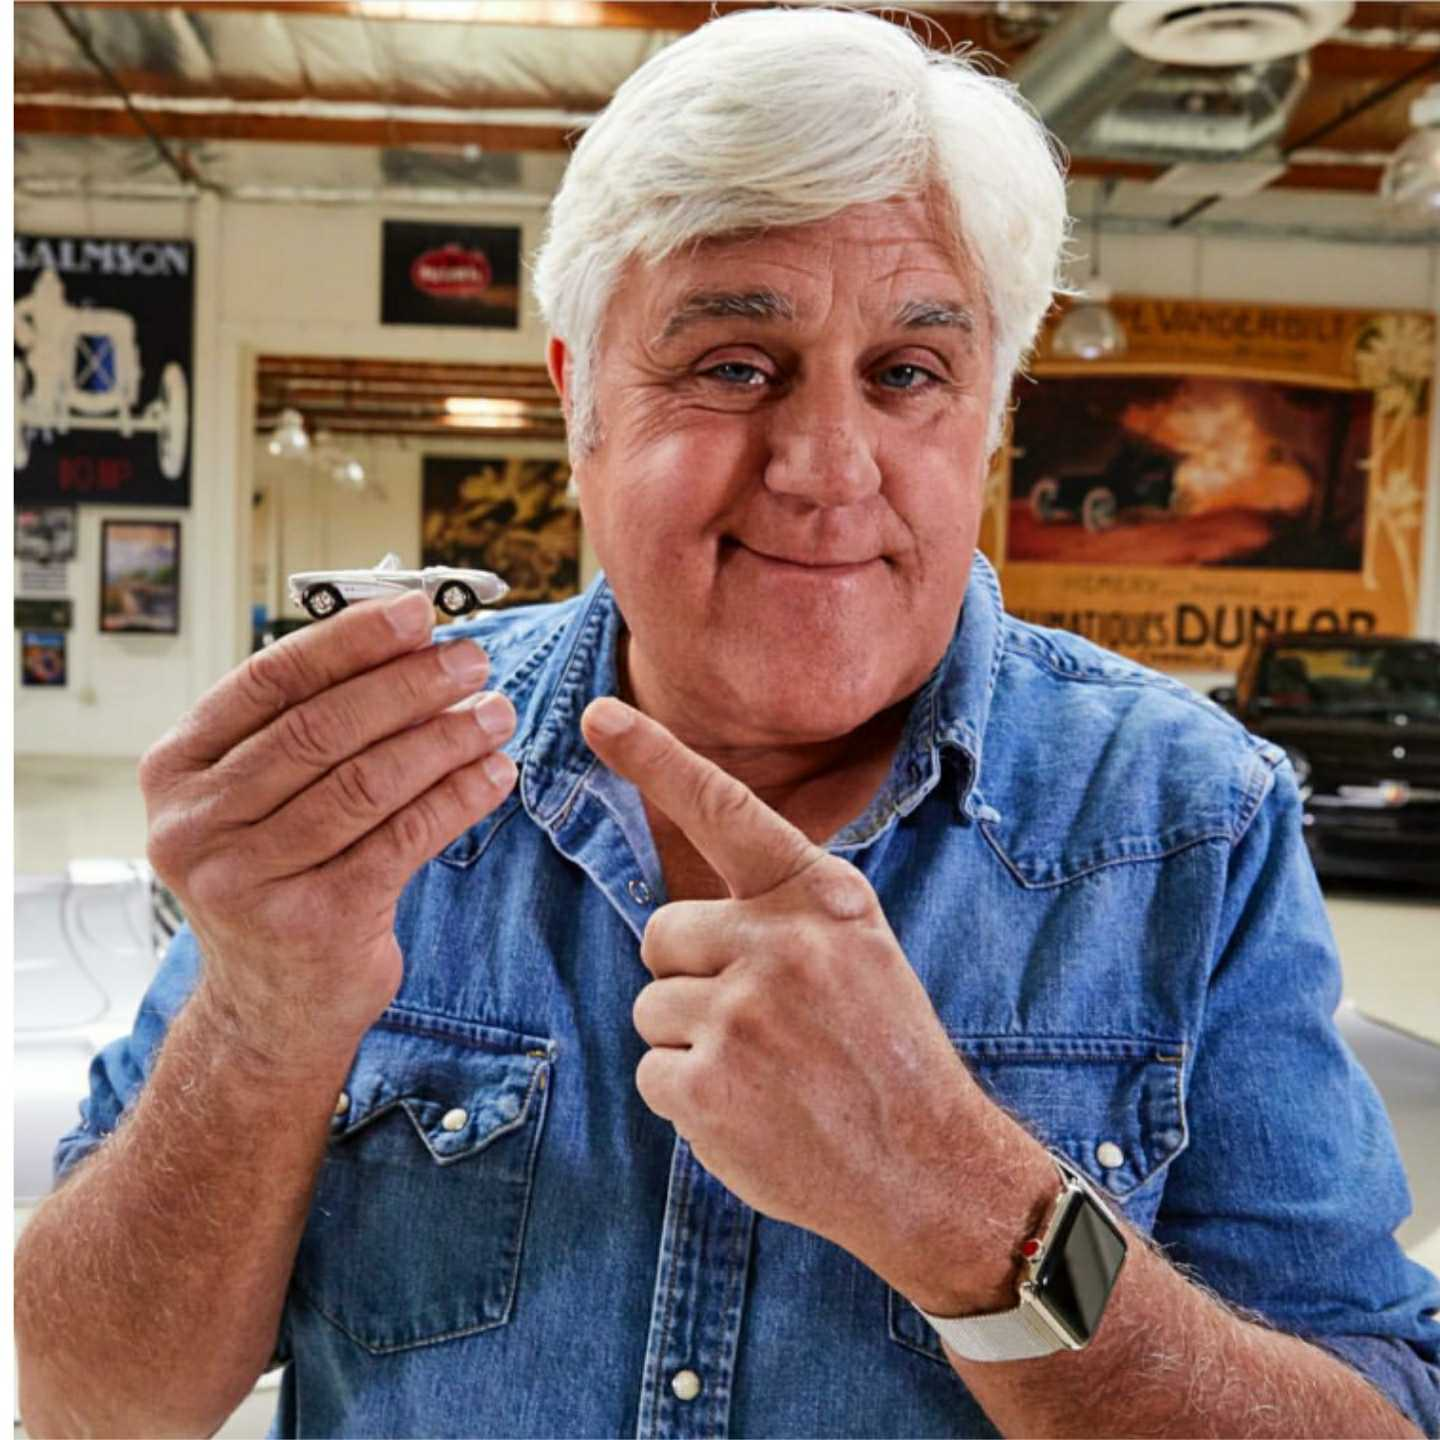 Hot Wheels, Jay Leno, Jay Leno's Garage, Auto, Car Enthusiasts, NBC, ferencomm, 360 MAGAZINE